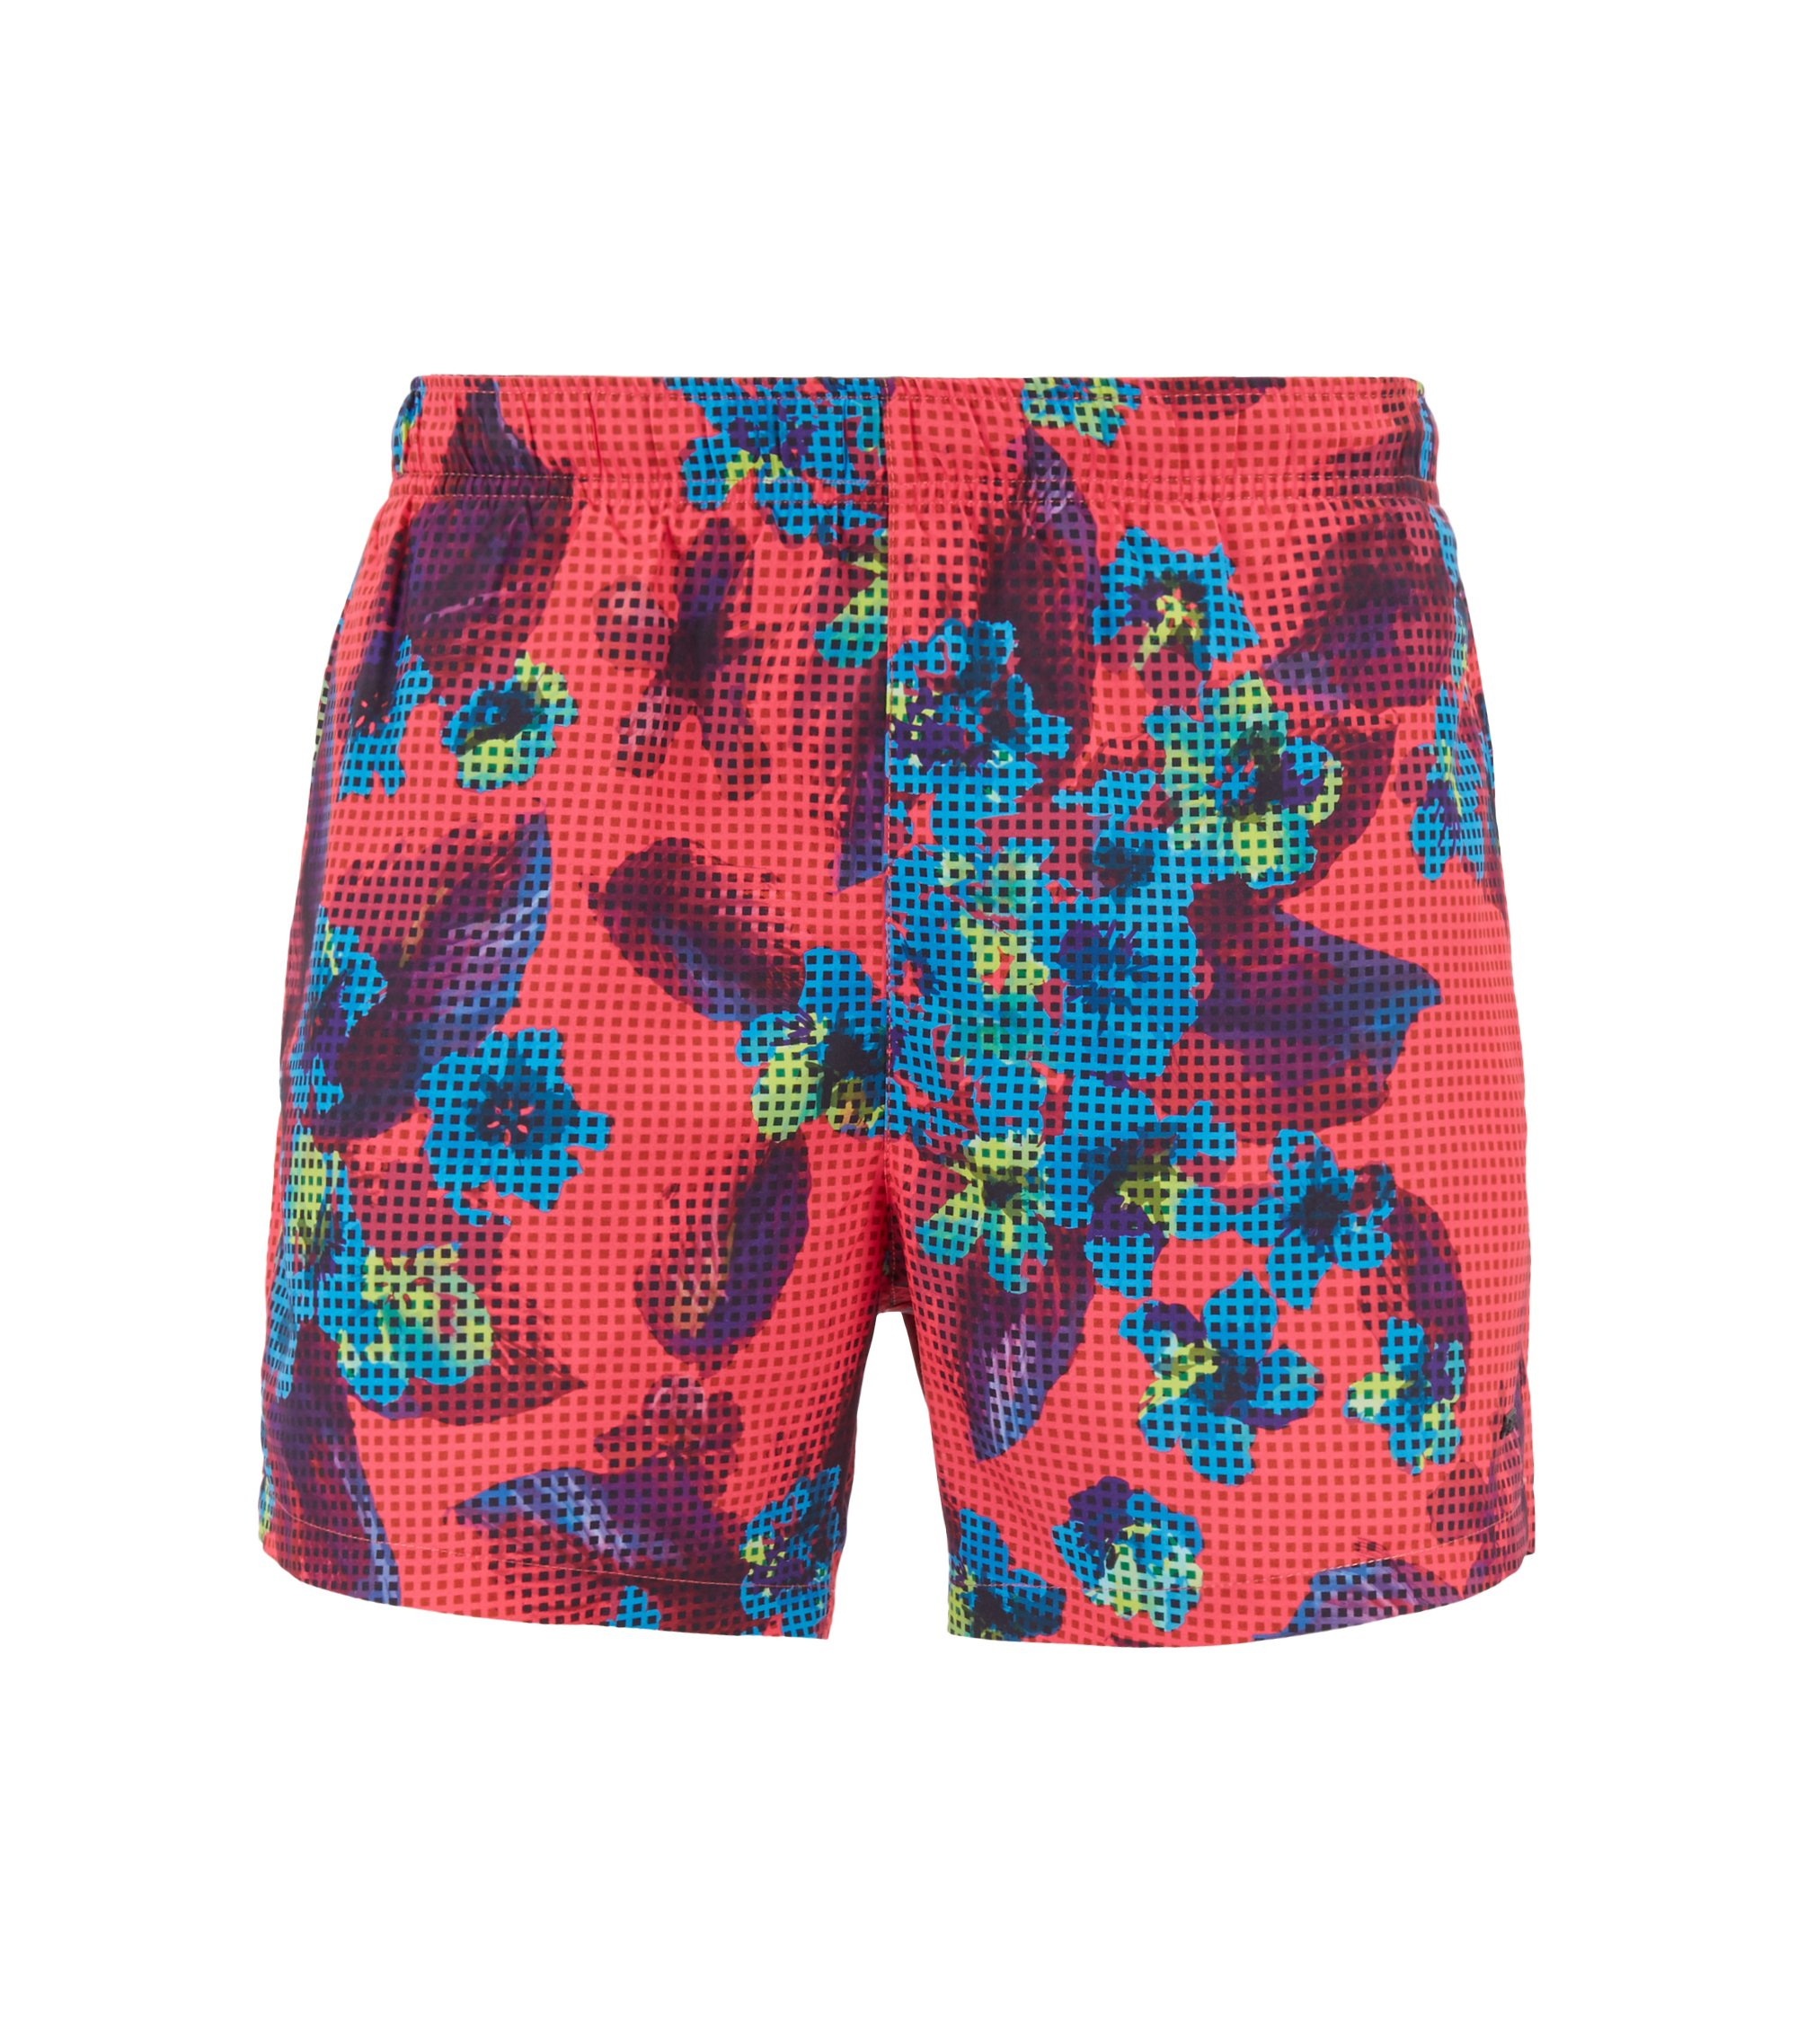 Short-length quick-dry swim shorts with modern floral print, Open Pink